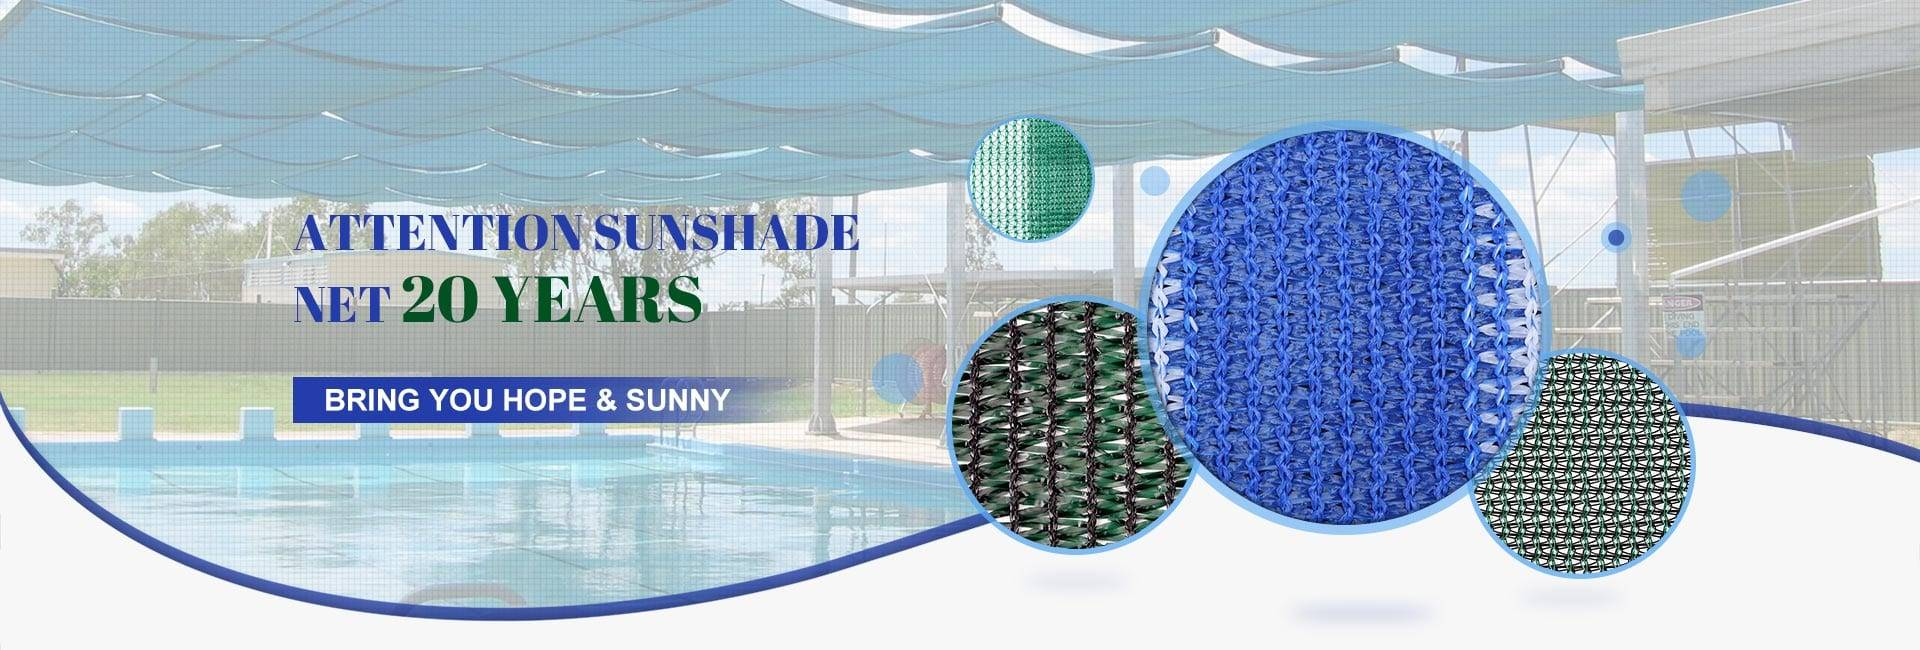 Attention Sunshade Net 20 Years